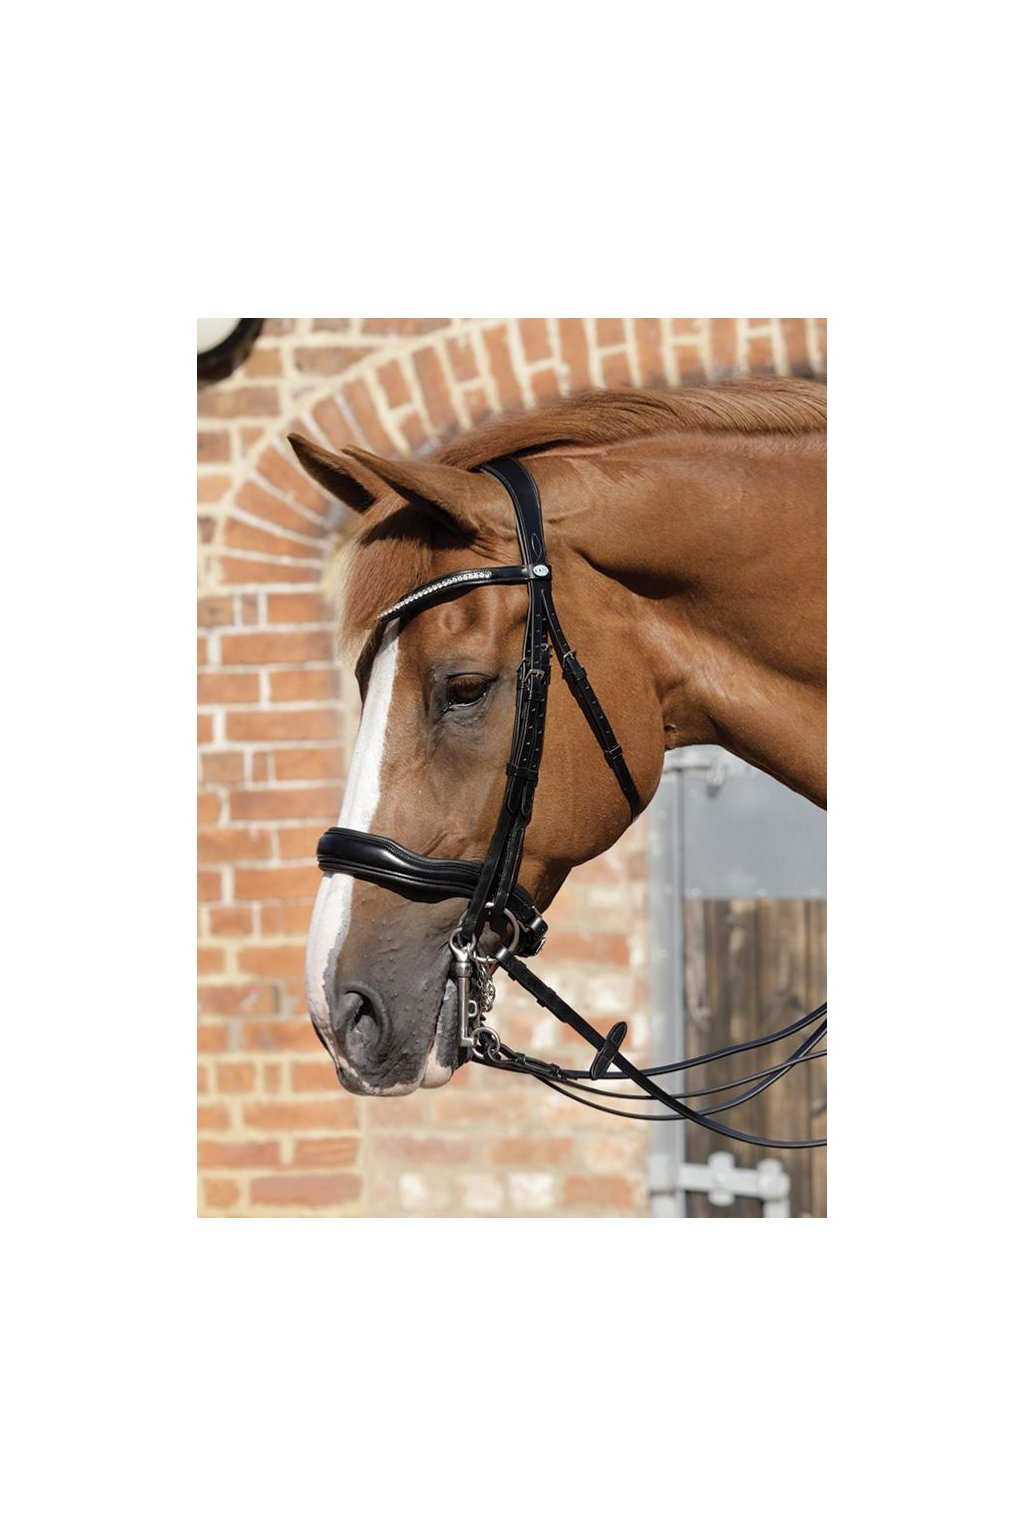 SS19 Abriano Anatomic Double Bridle with Crank Noseband Close Up Full Bridle